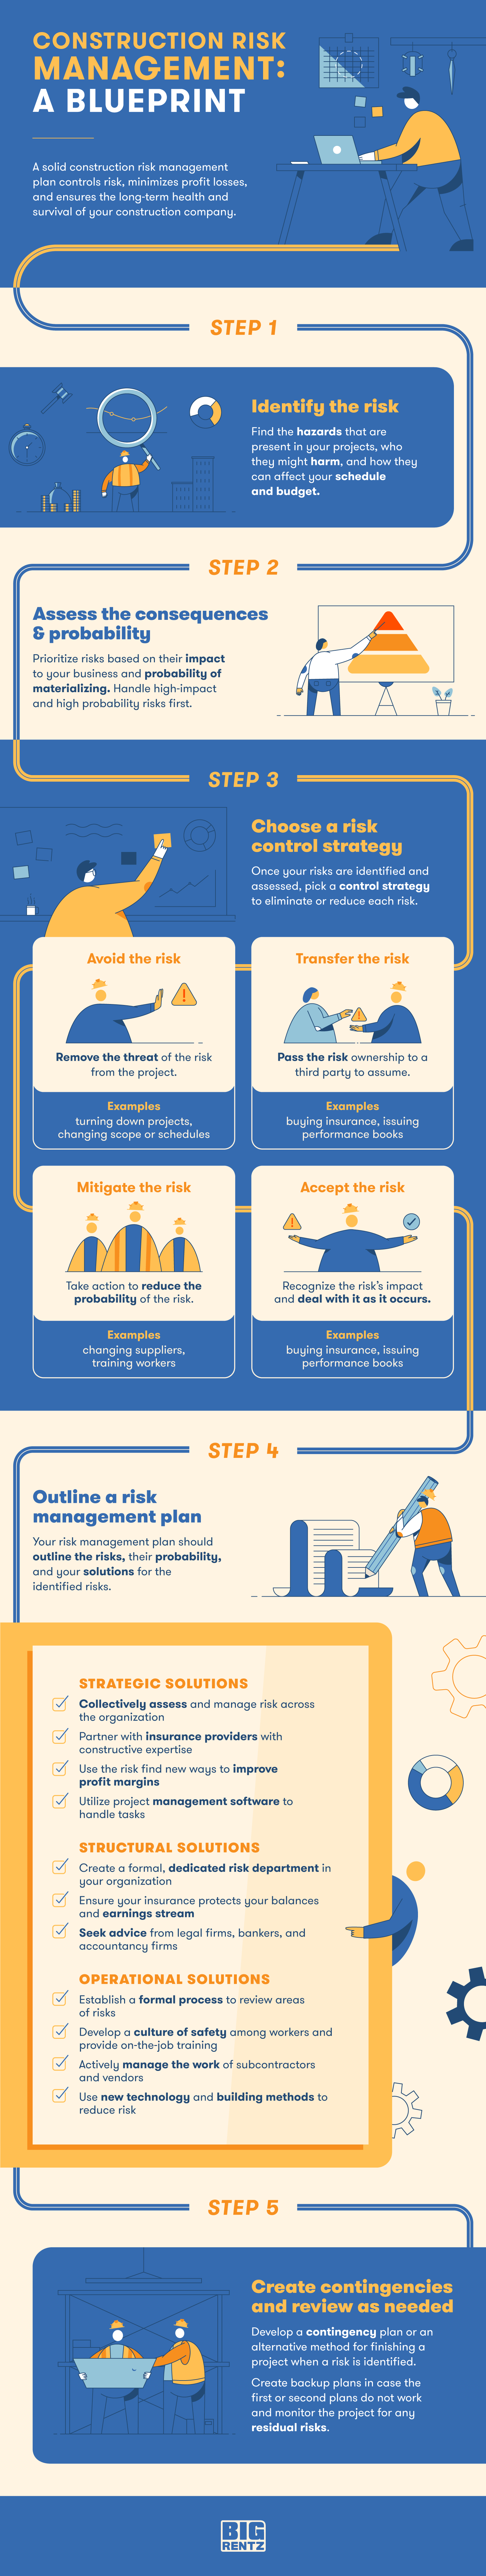 An infographic featuring the steps to construction risk management.